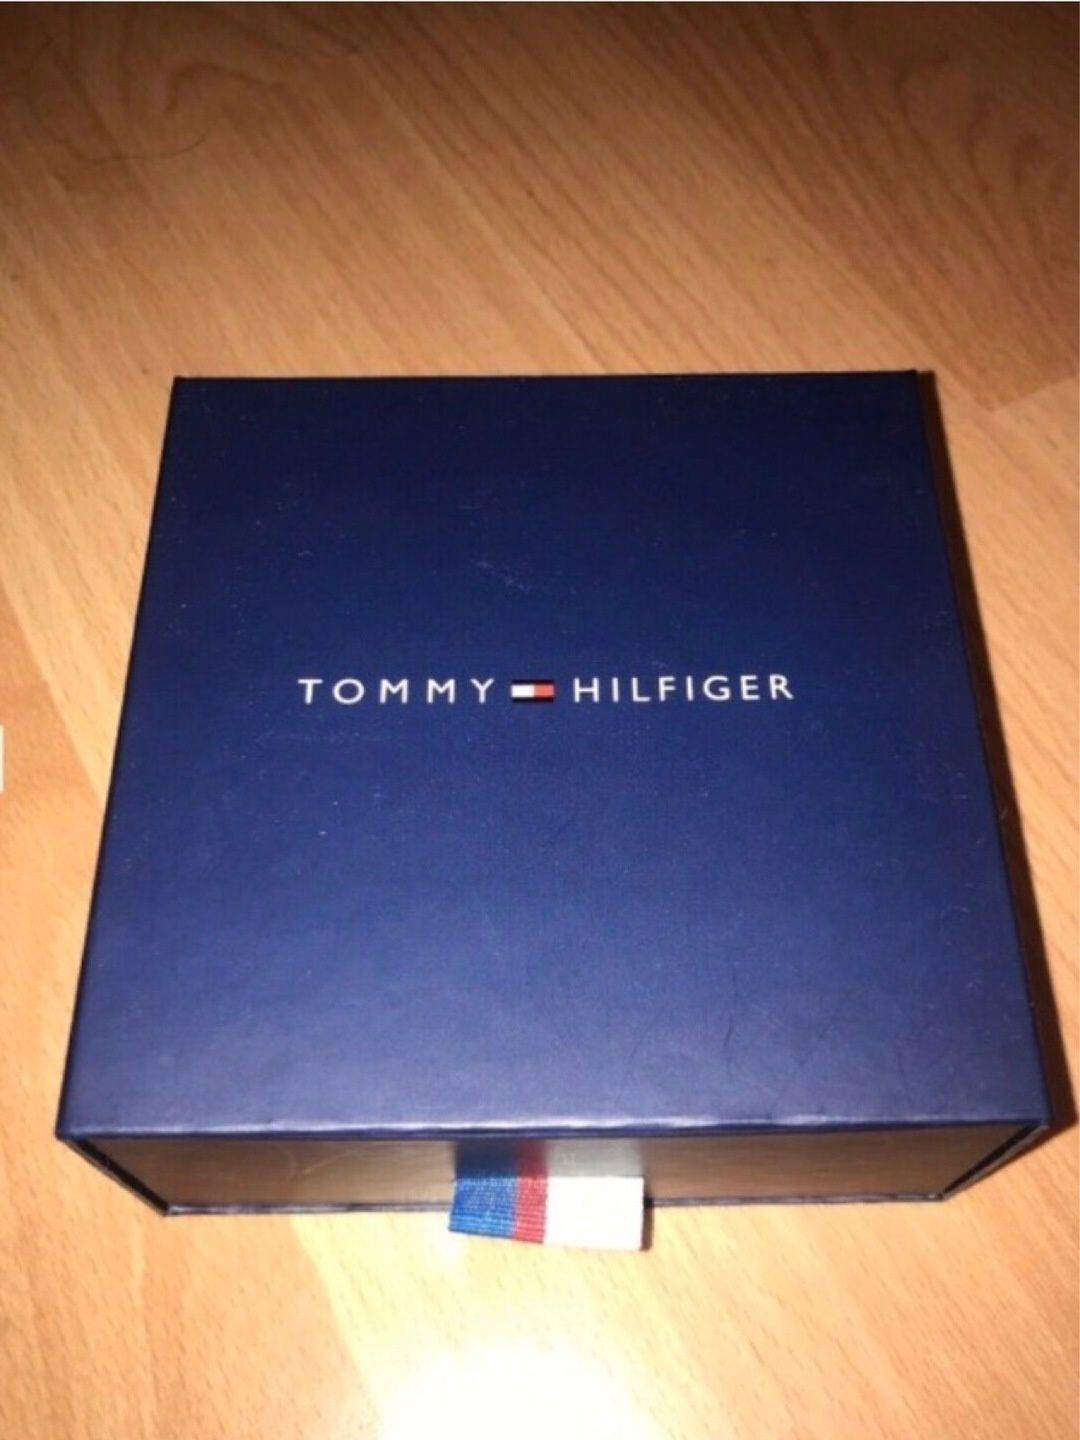 Women's other - TOMMY HILFIGER photo 3